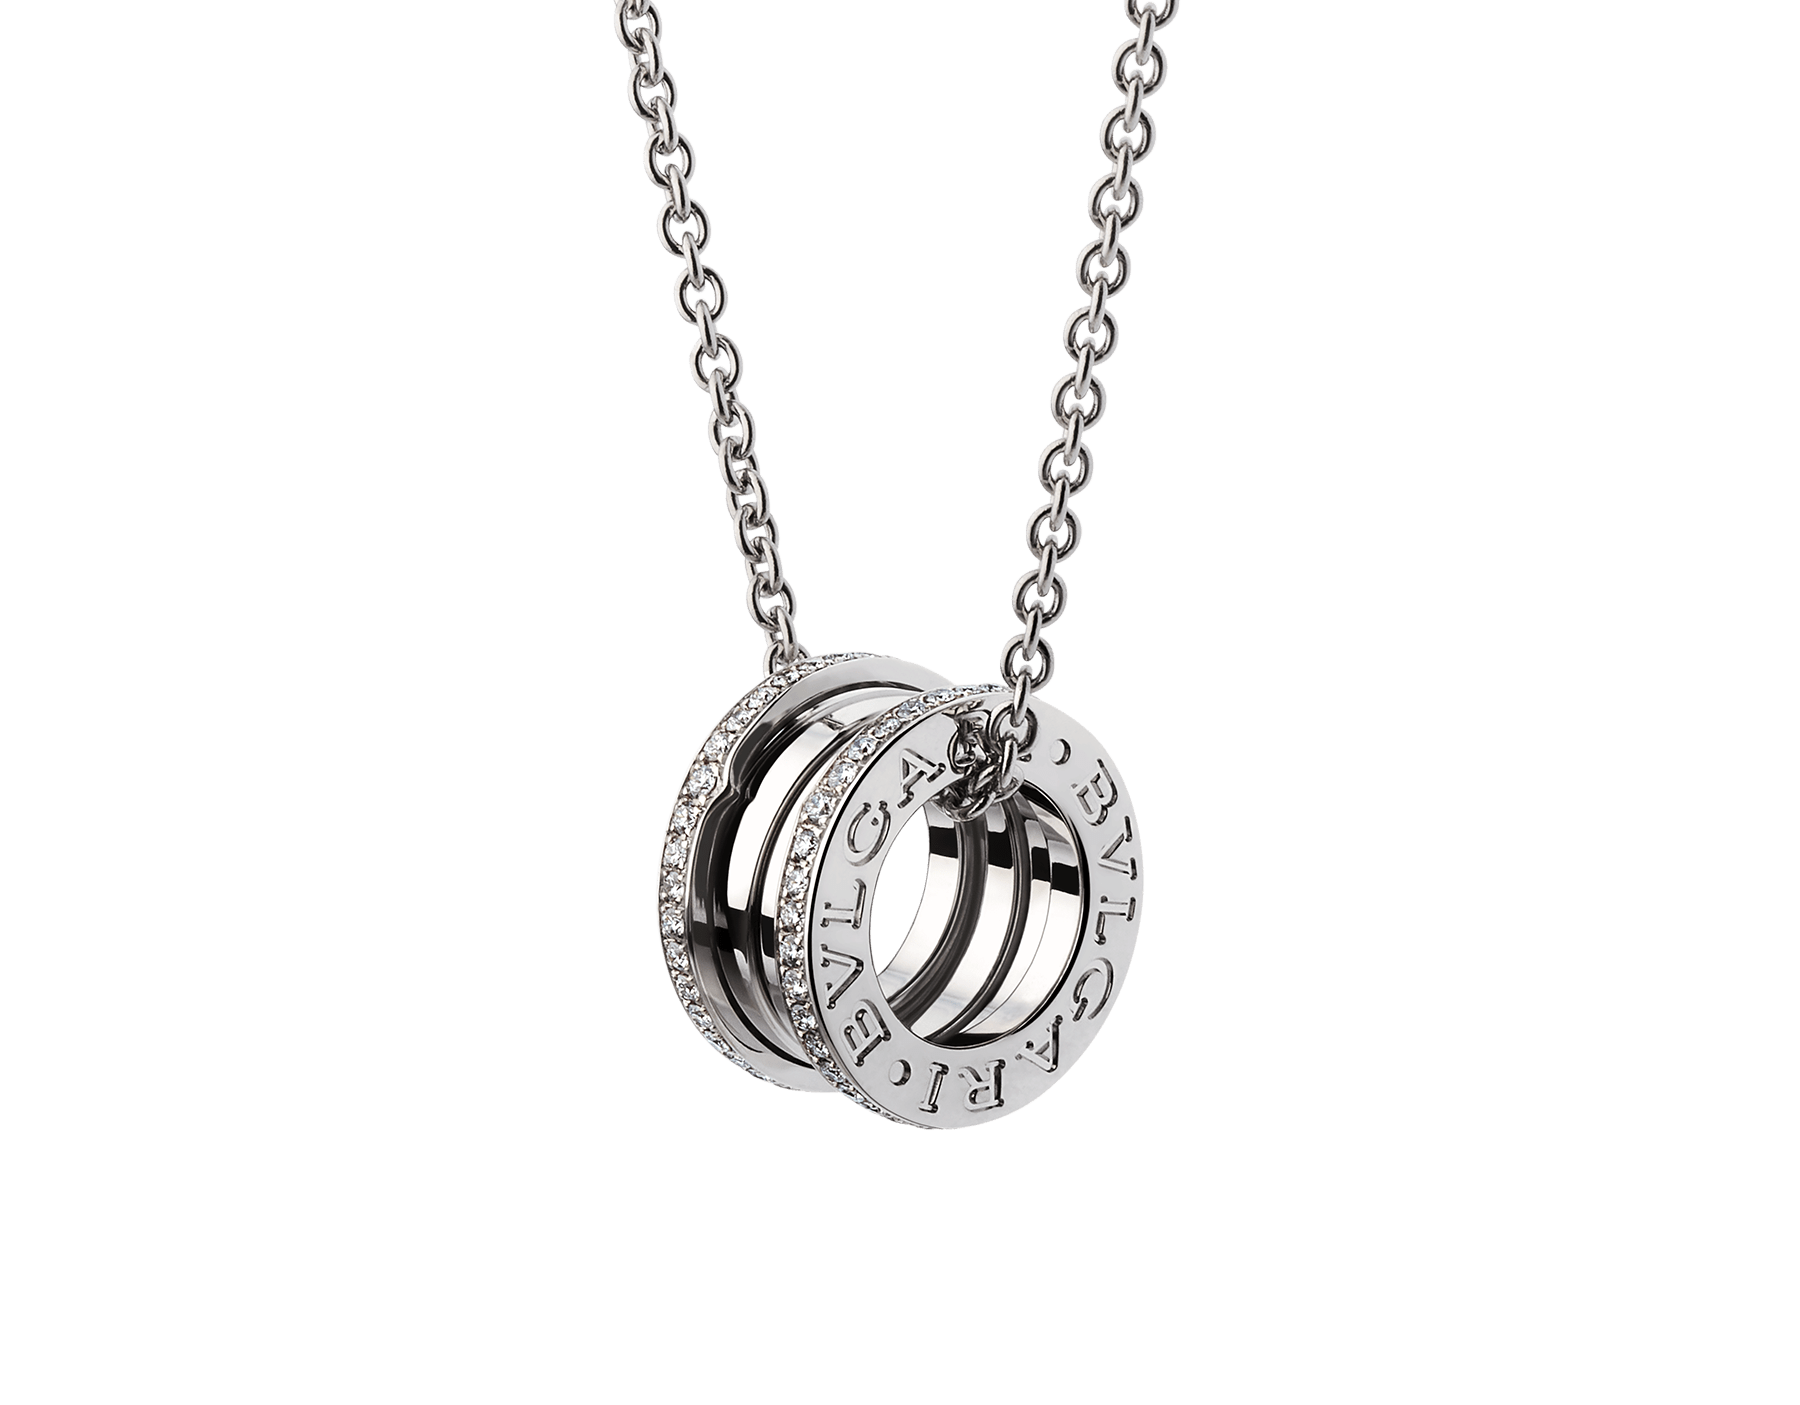 B.zero1 necklace with 18 kt white gold chain and 18 kt white gold round pendant set with pavé diamonds on the edges. 350054 image 1